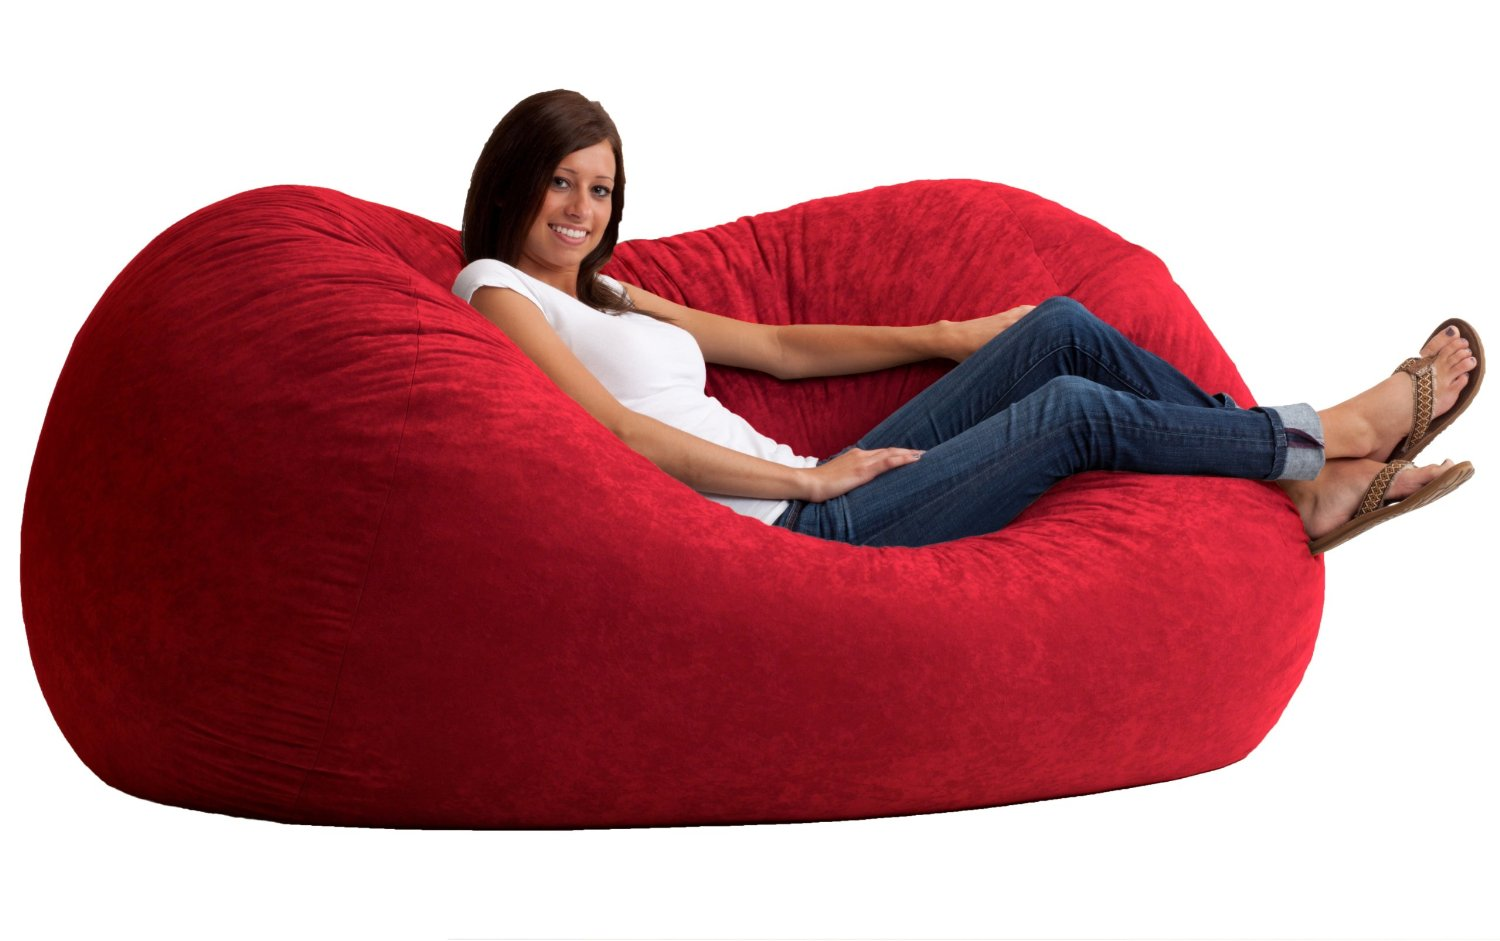 giant bean bag chair tempting large red fuzzy bean bag chair in bedroom decor